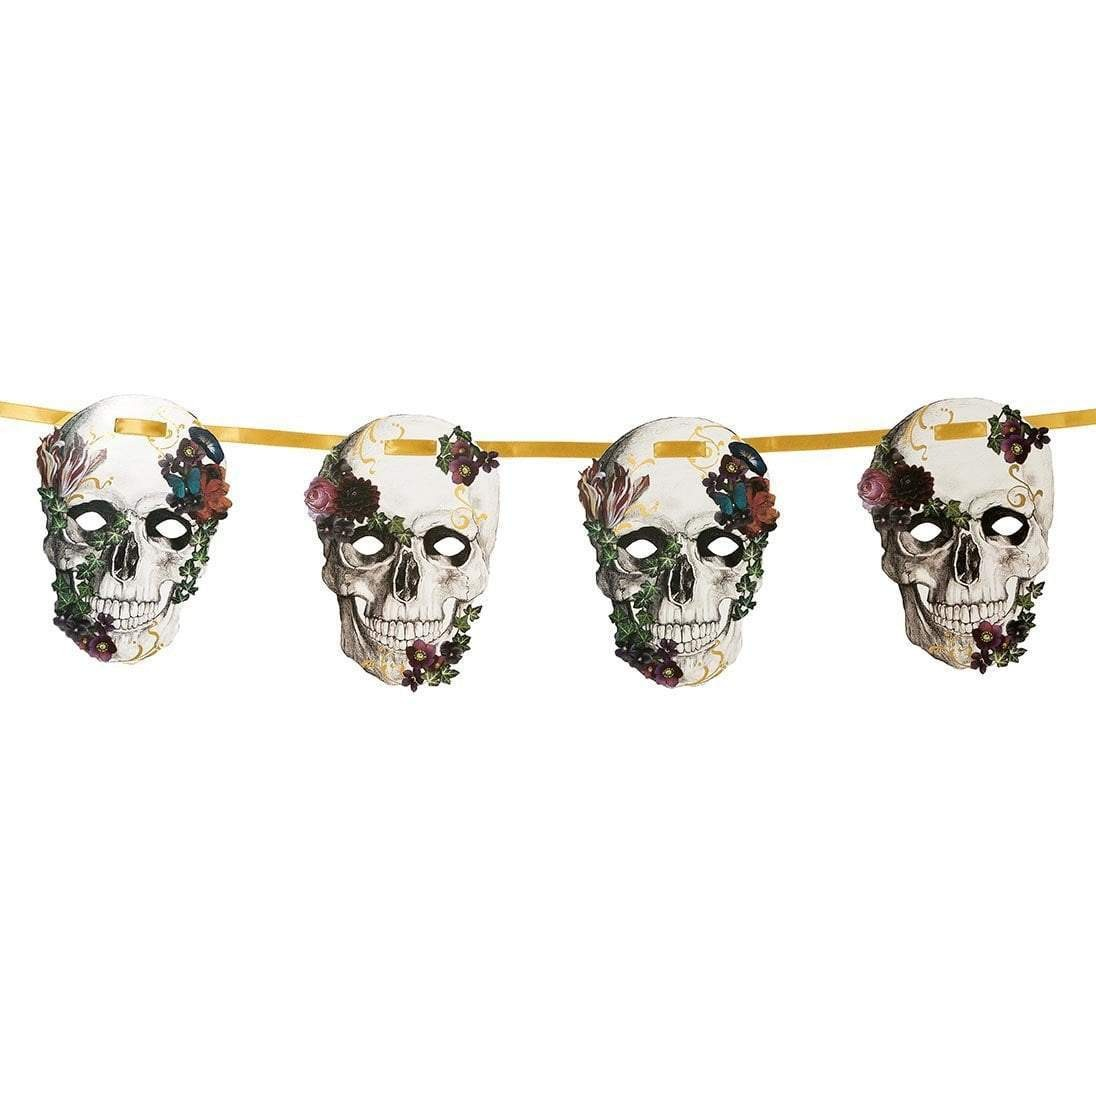 A floral paper Baroque Skeleton Skull Garland, £5.83, from Talking Tables